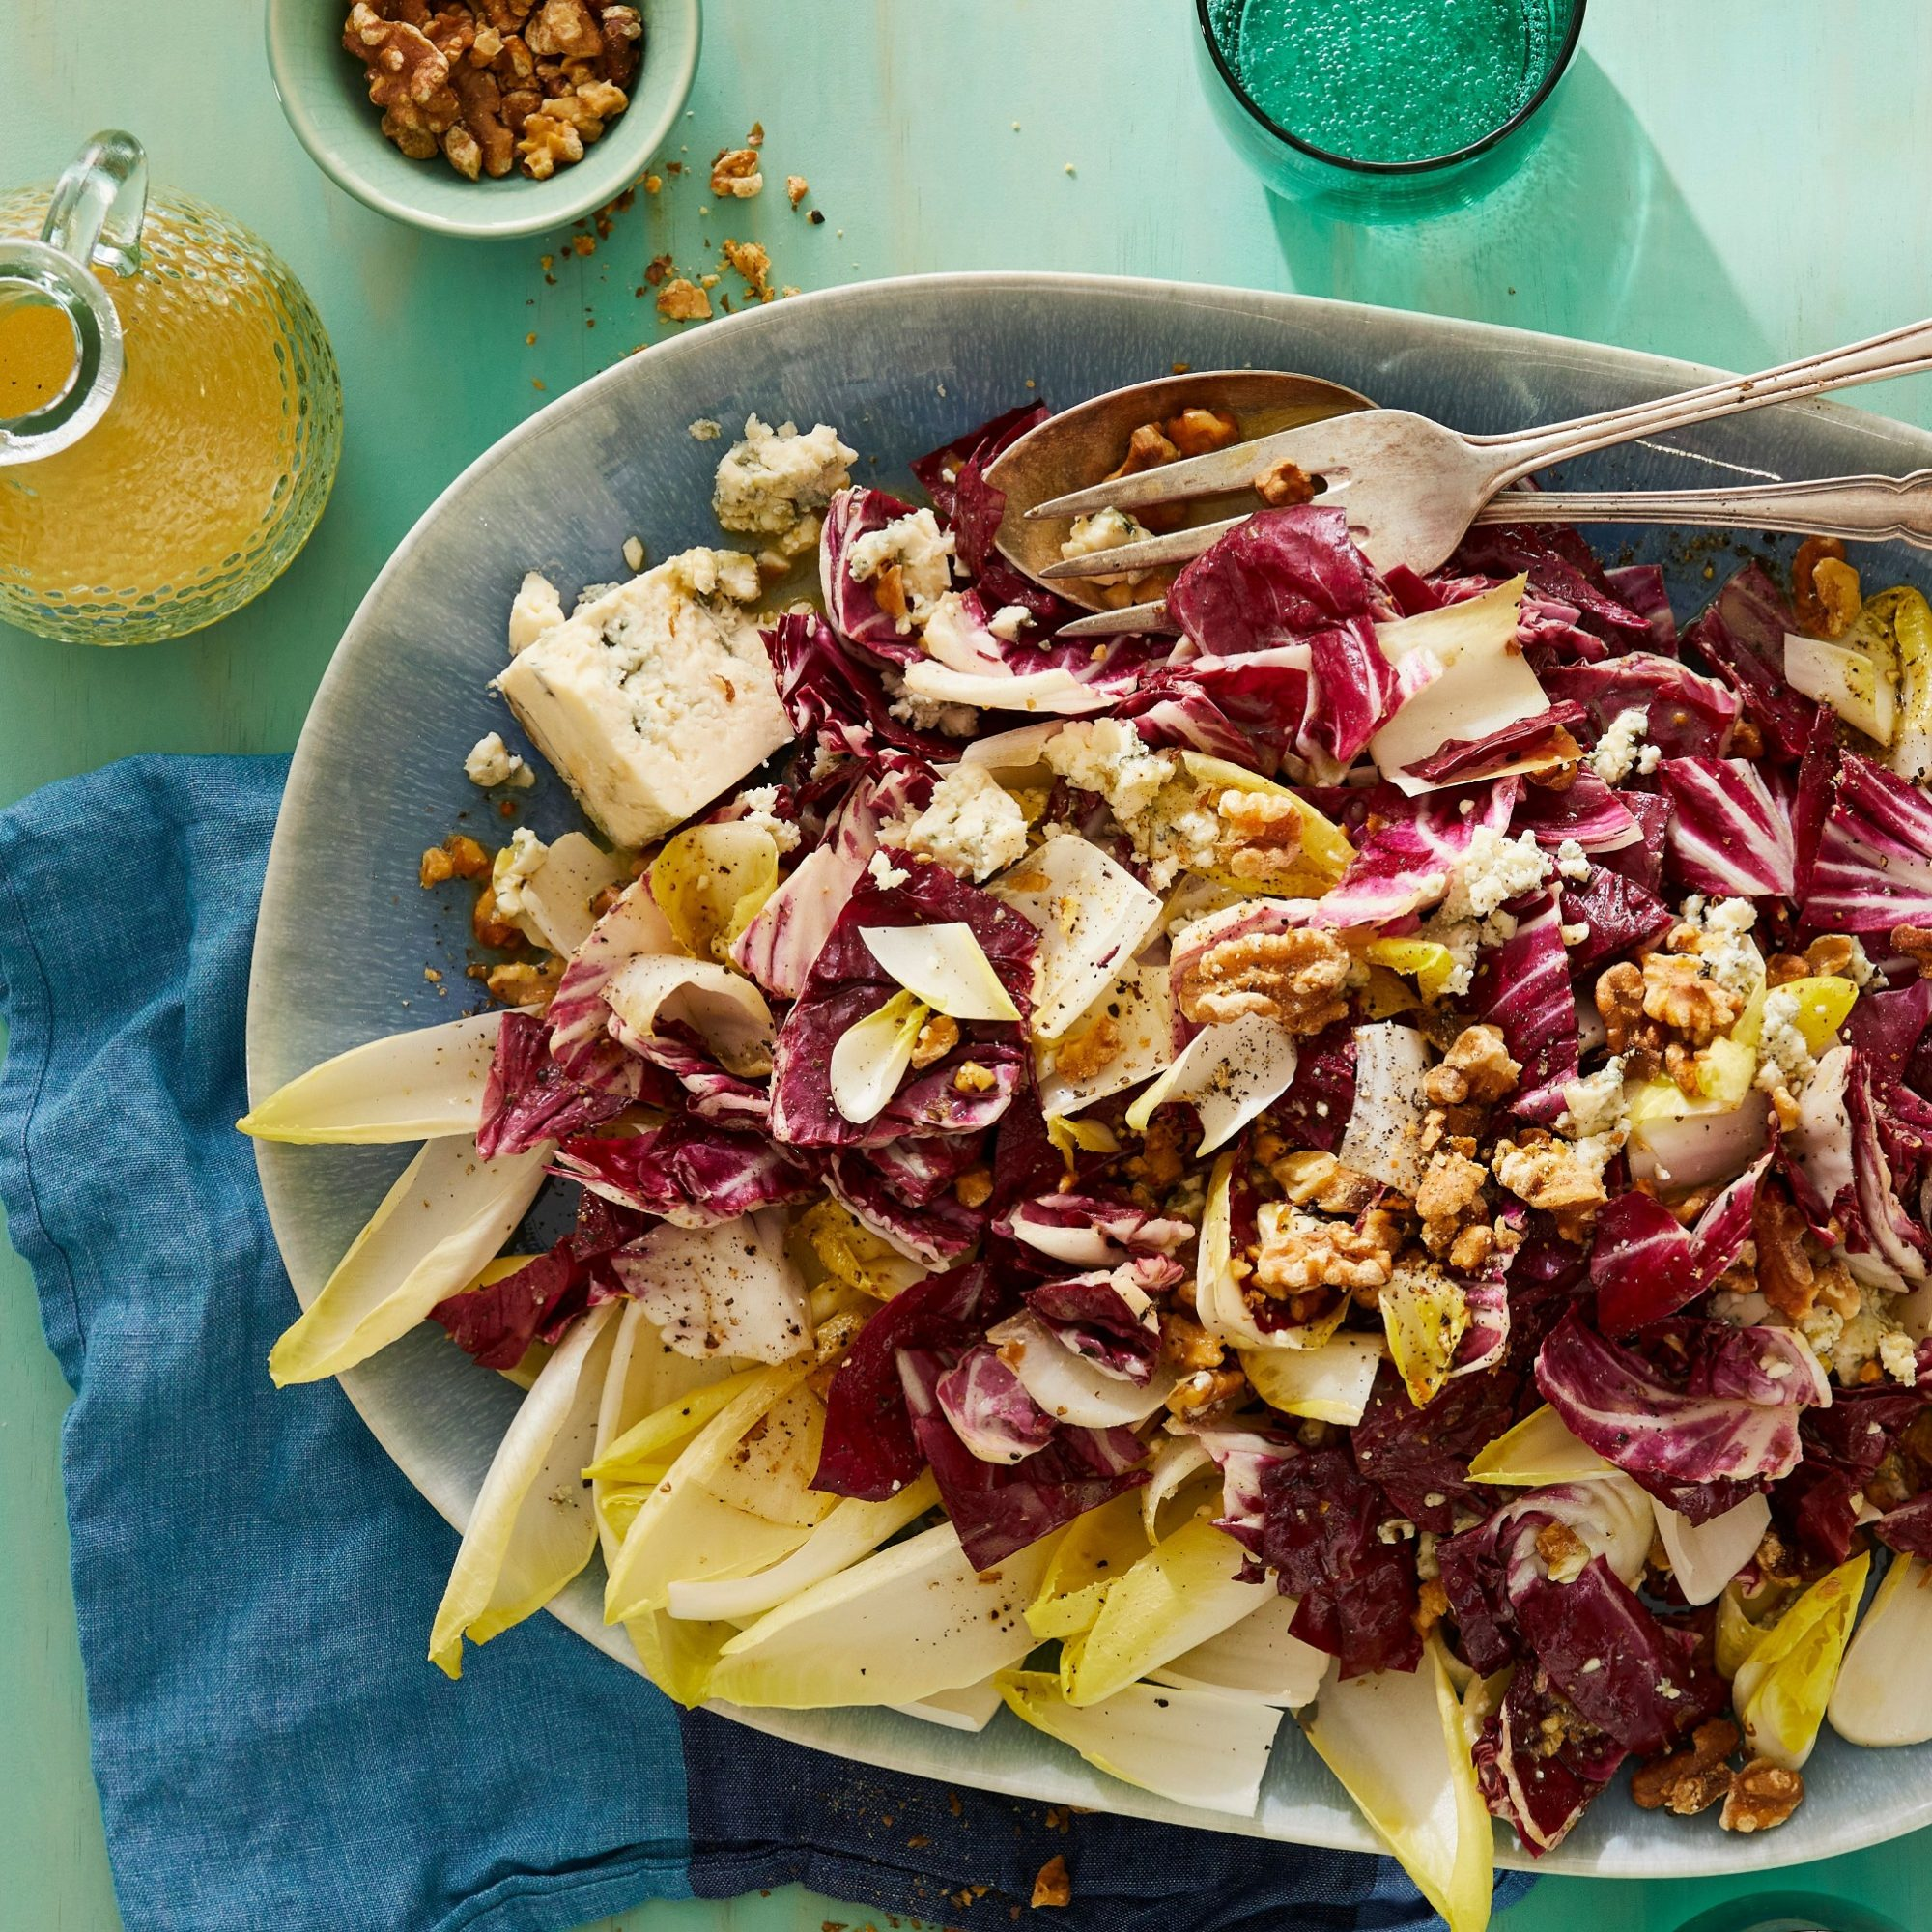 salad of blue cheese, walnuts, endive, and radicchio on a platter